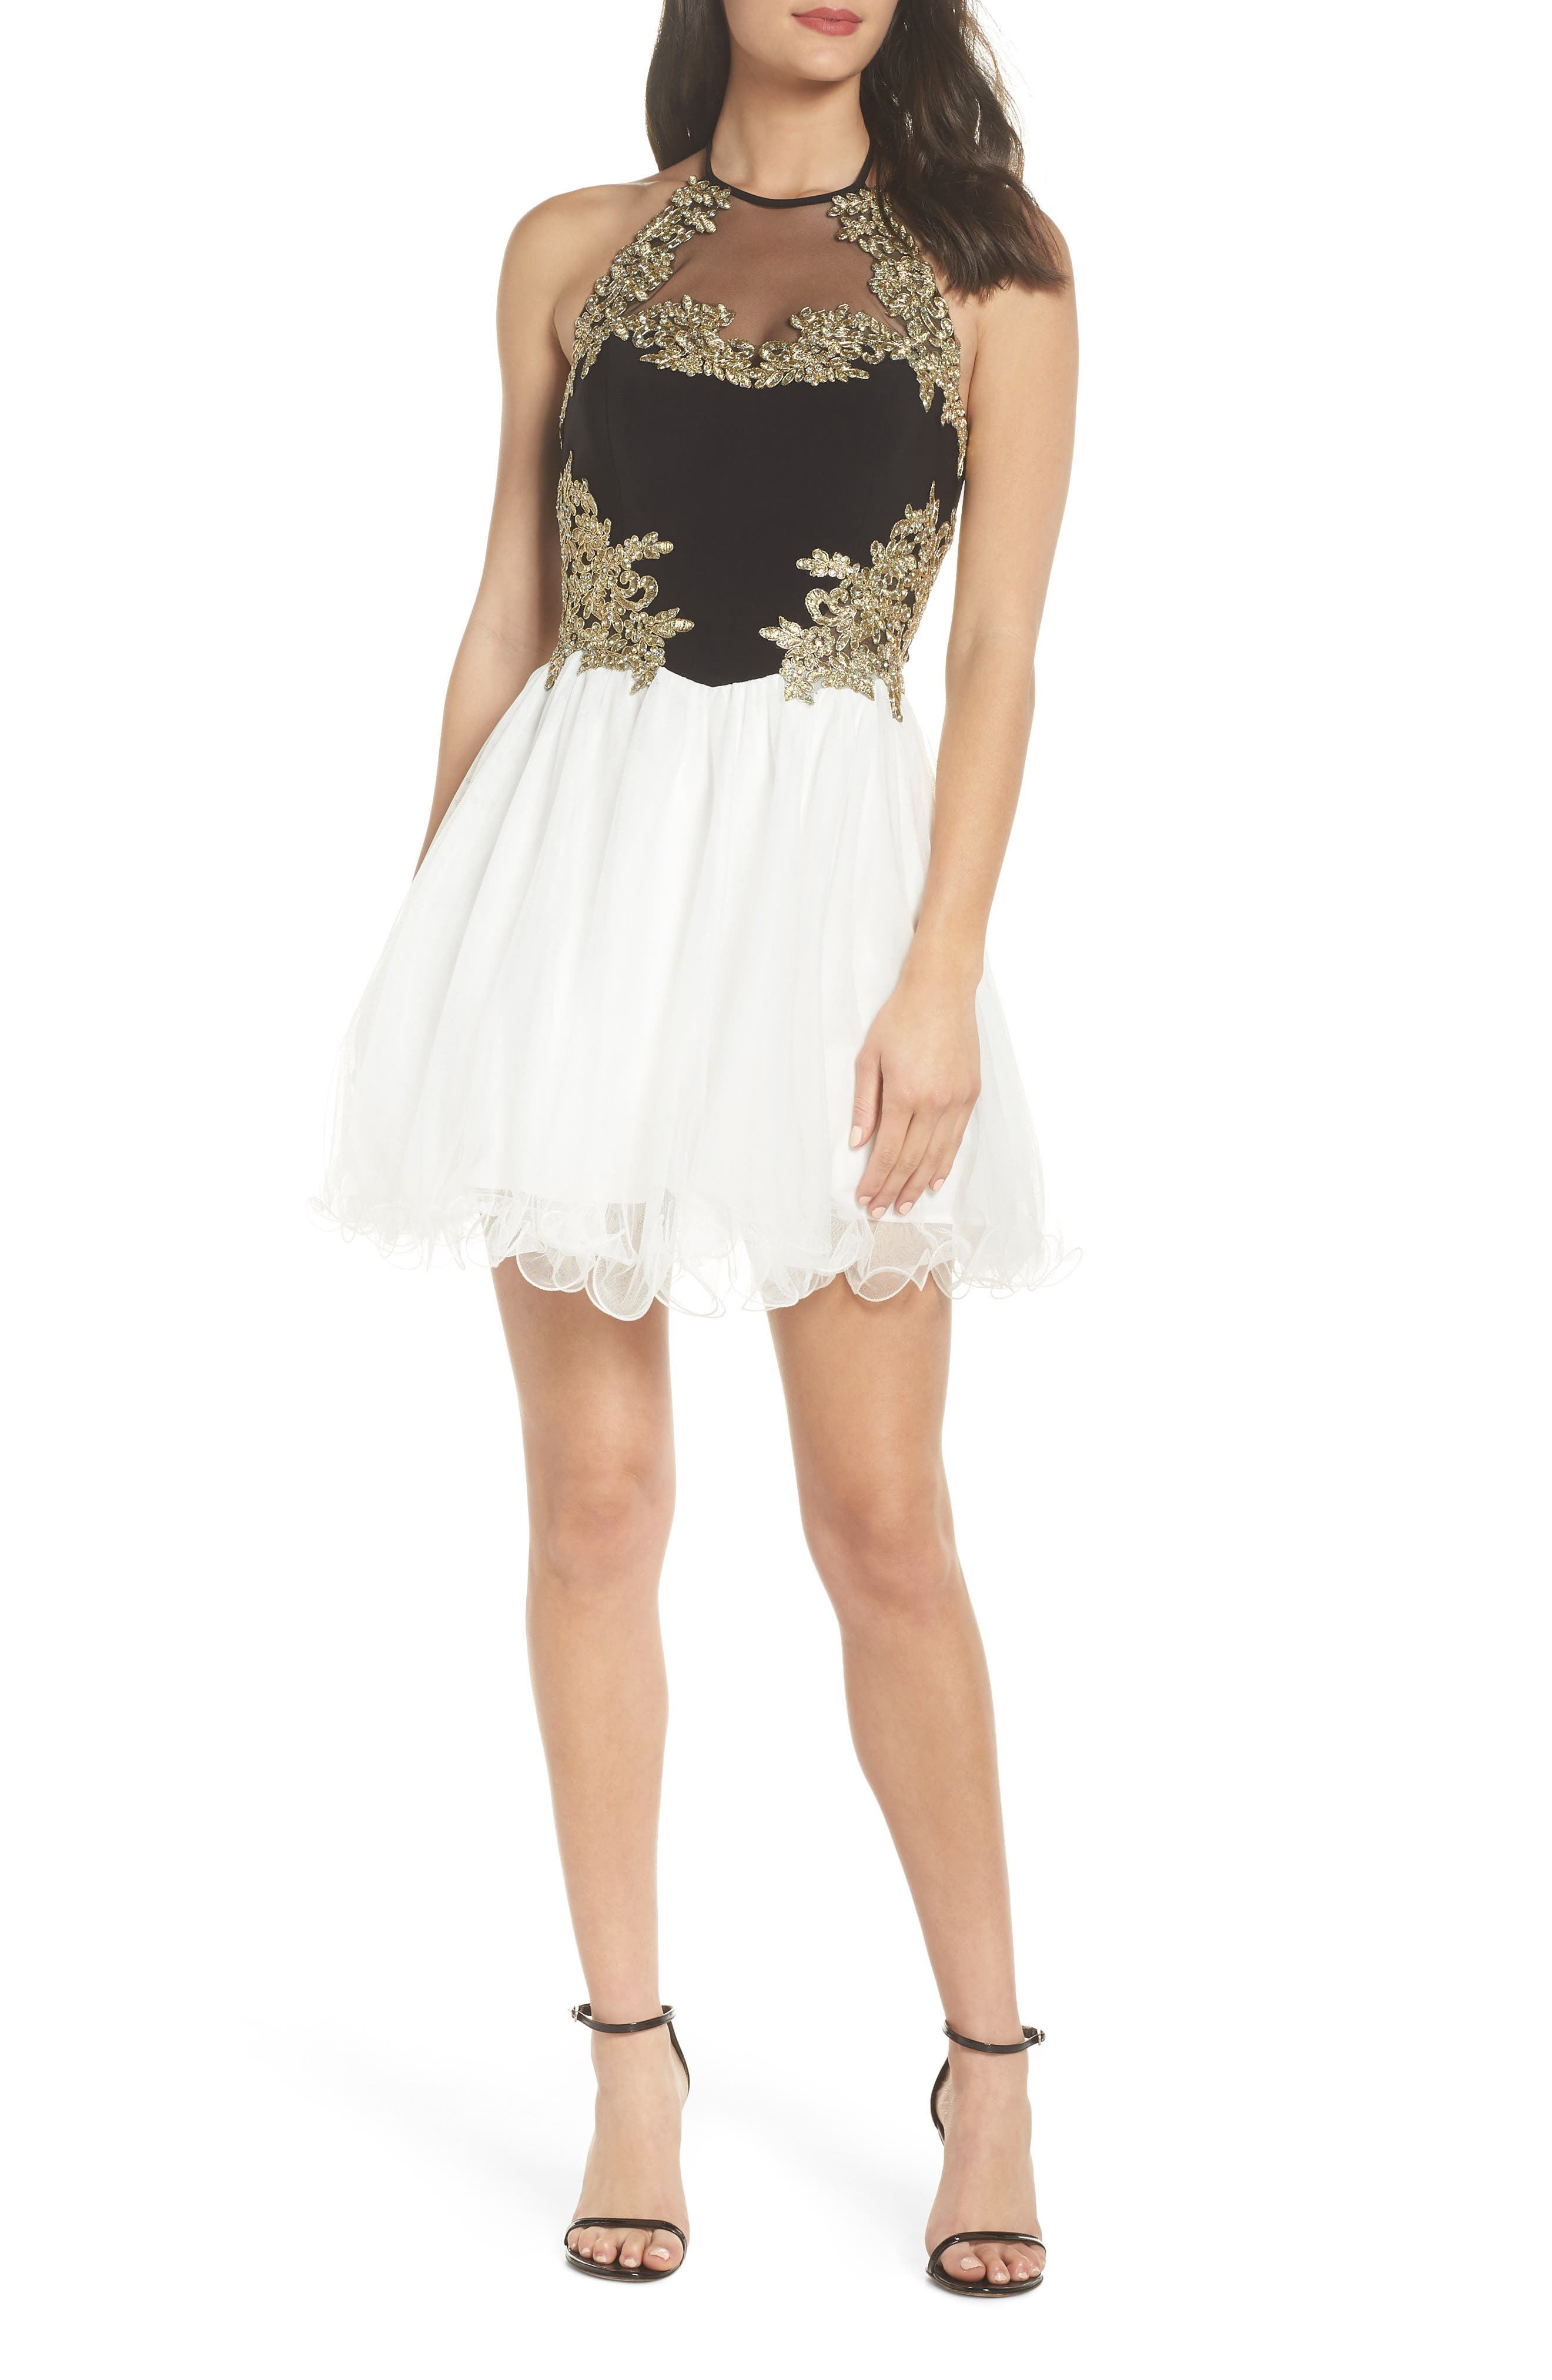 Blondie Nites Applique Bodice Fit & Flare Halter Dress, Black